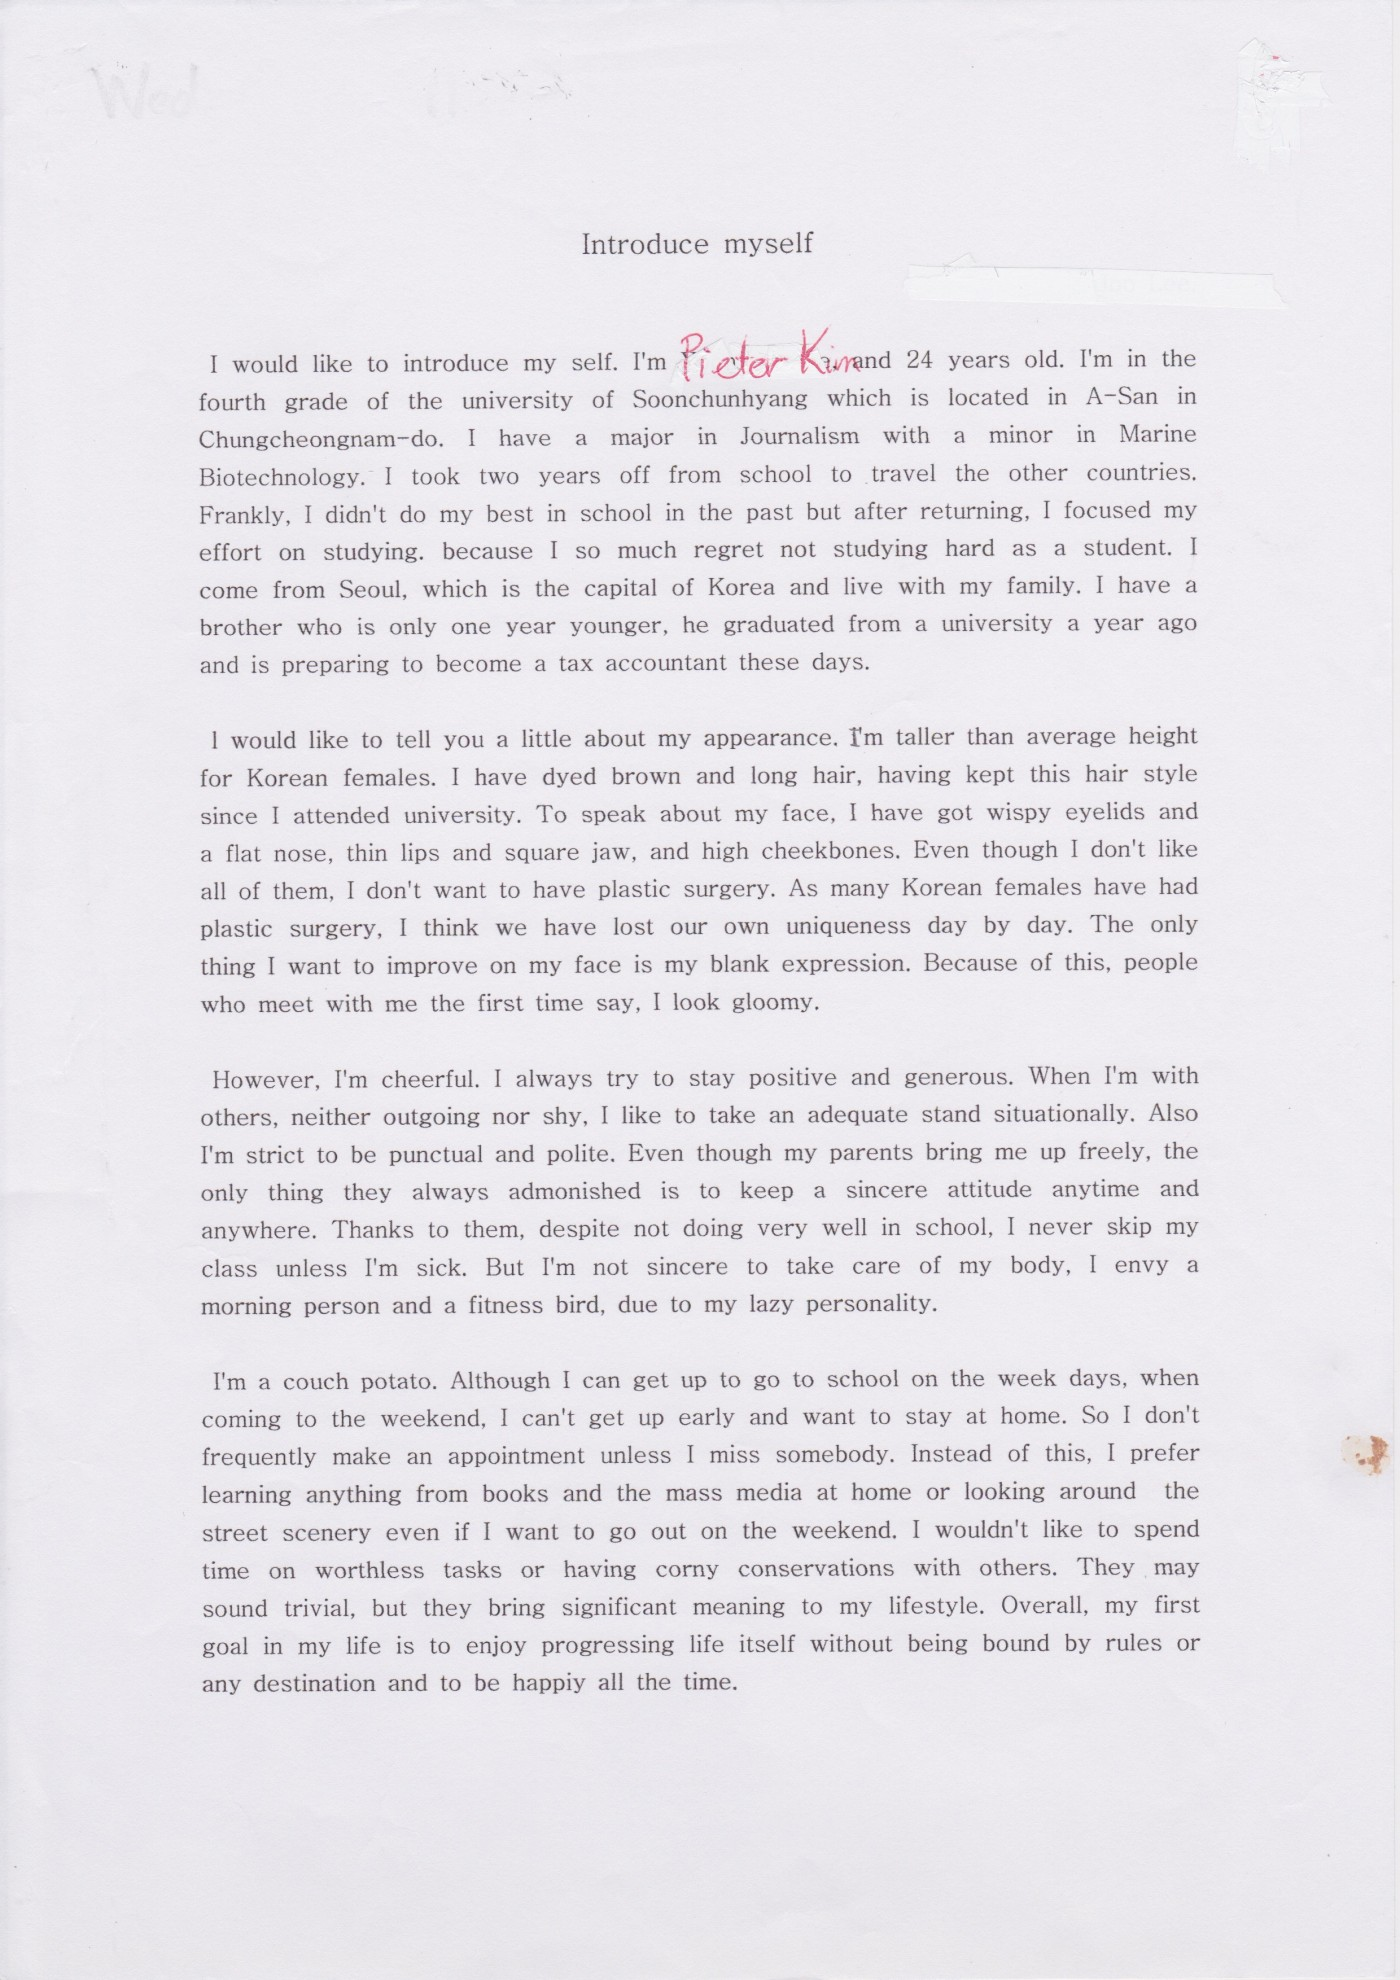 002 Essay Example Sample About Myself Introduction Bunch